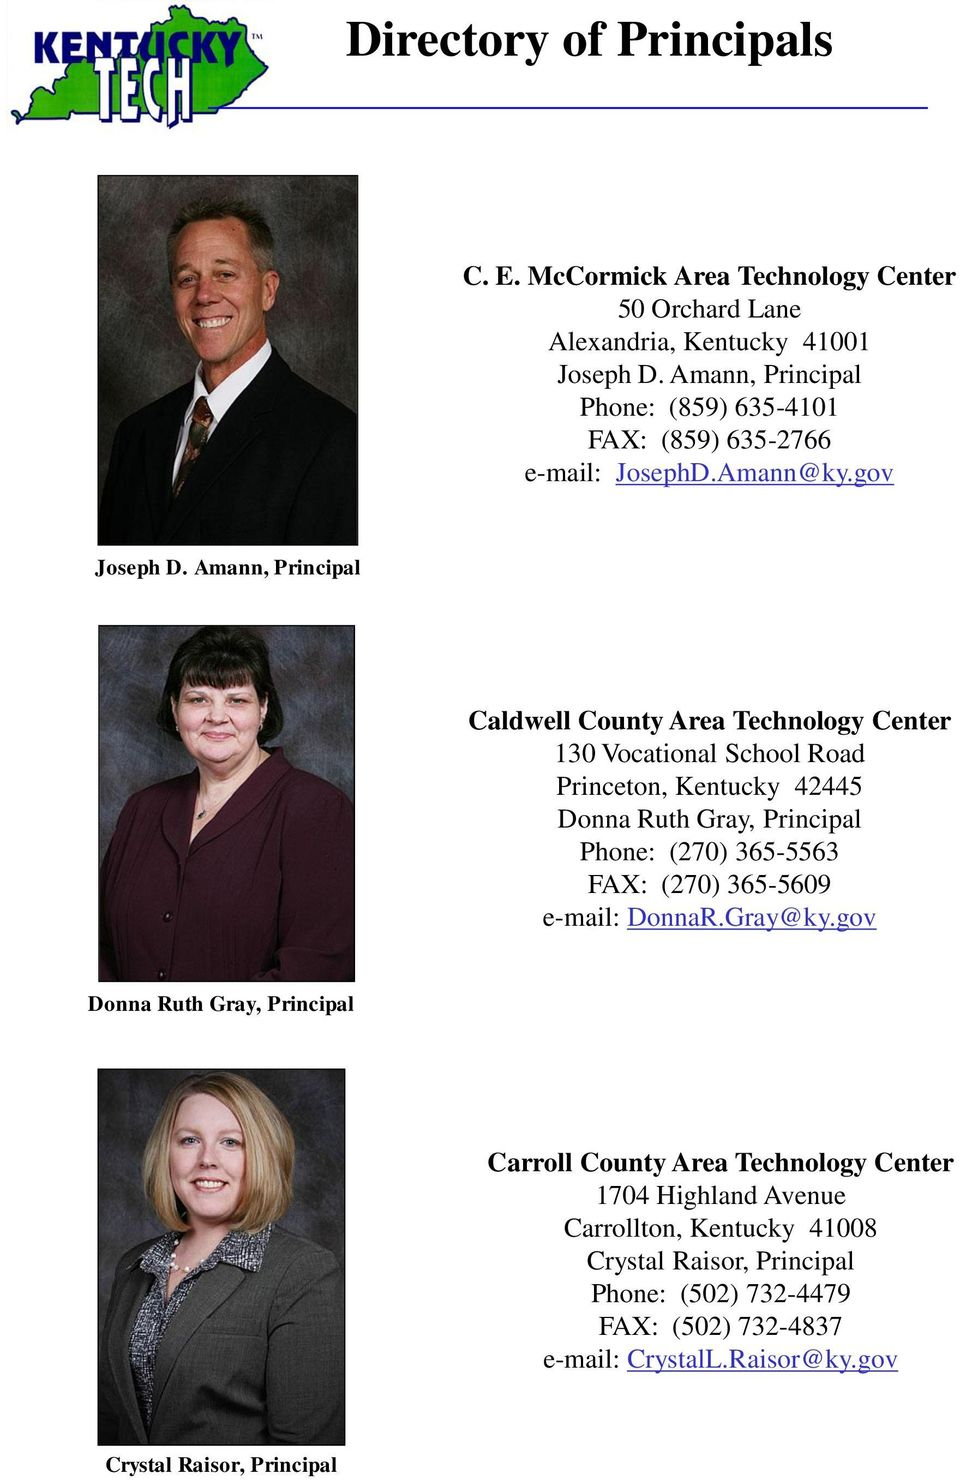 Amann, Principal Caldwell County Area Technology Center 130 Vocational School Road Princeton, Kentucky 42445 Donna Ruth Gray, Principal Phone: (270) 365-5563